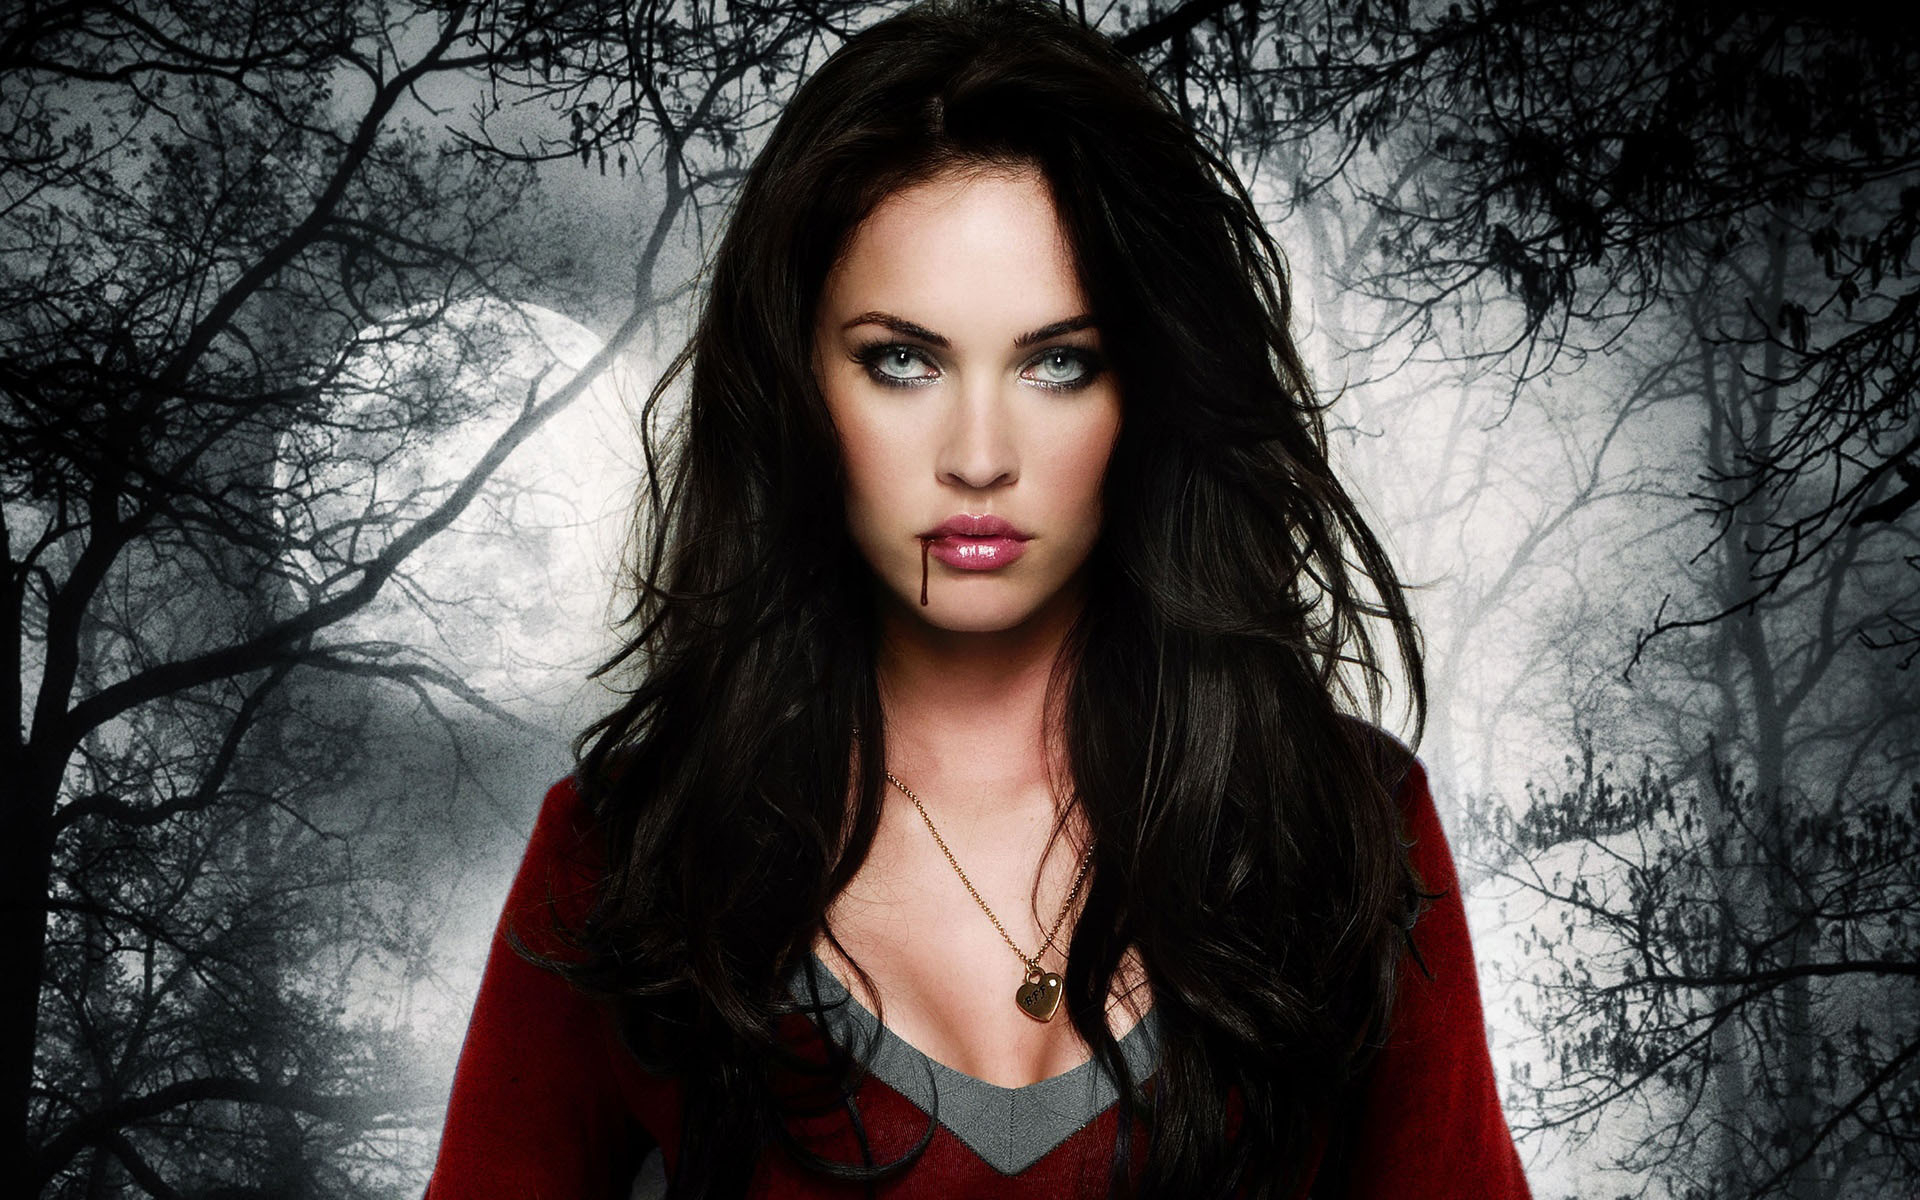 Girls Models Models M Vampire Megan Fox 023740 Jpg